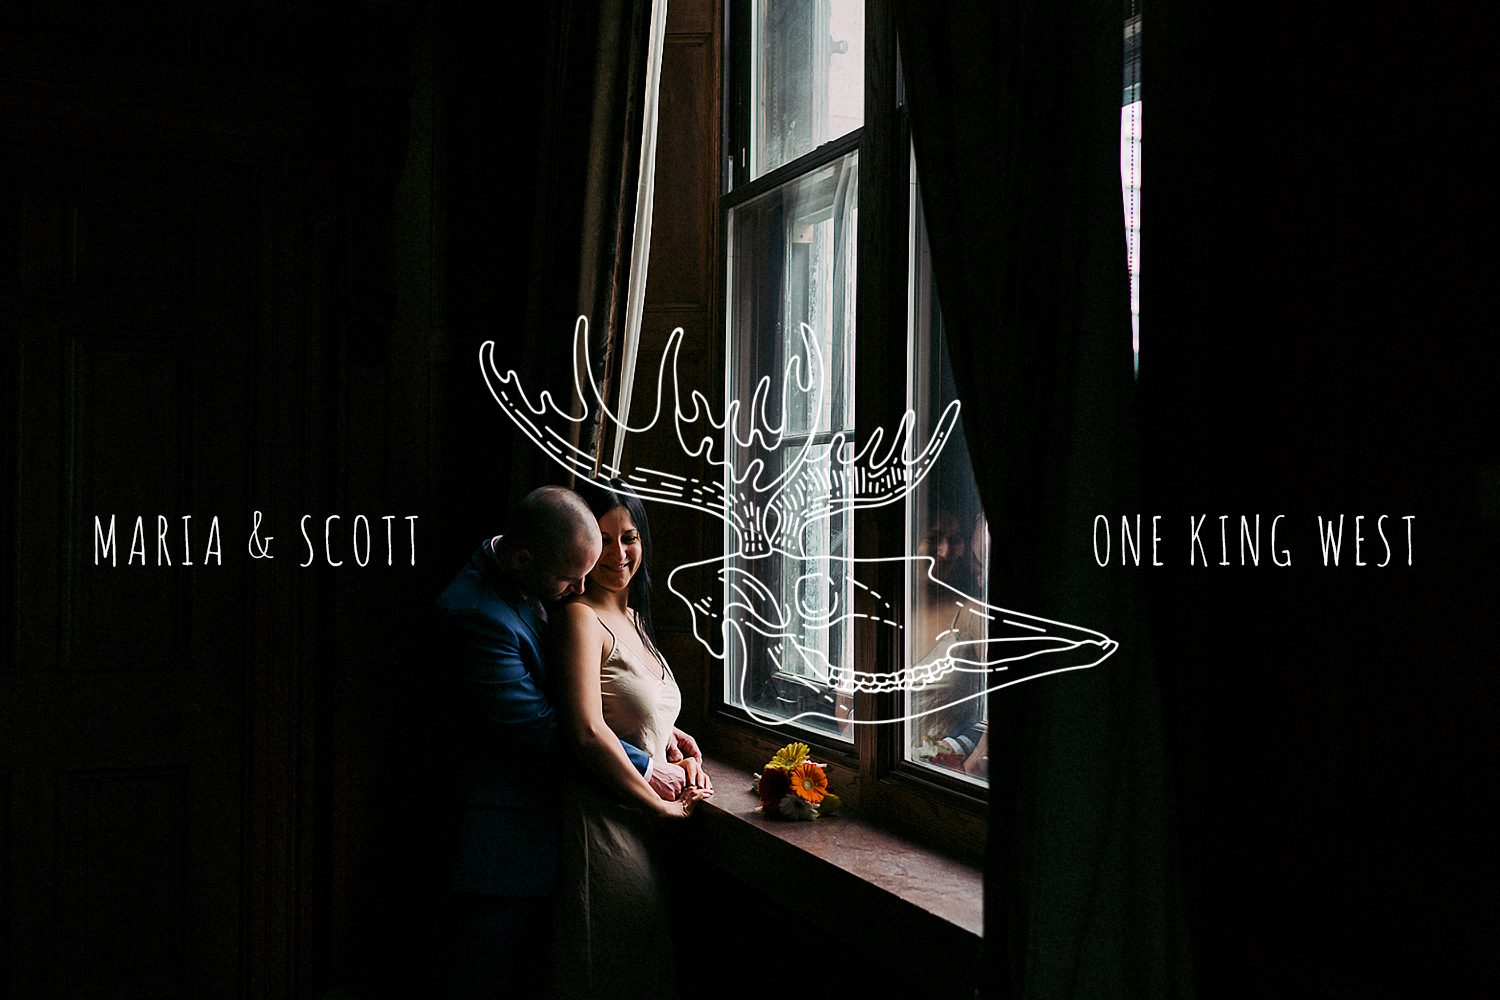 title-inner-One-King-West-Intimate-Elopement-Wedding-Analog-Film-Wedding-Photographer-Toronto-Wedding-Photography-Bank-Vault.jpg